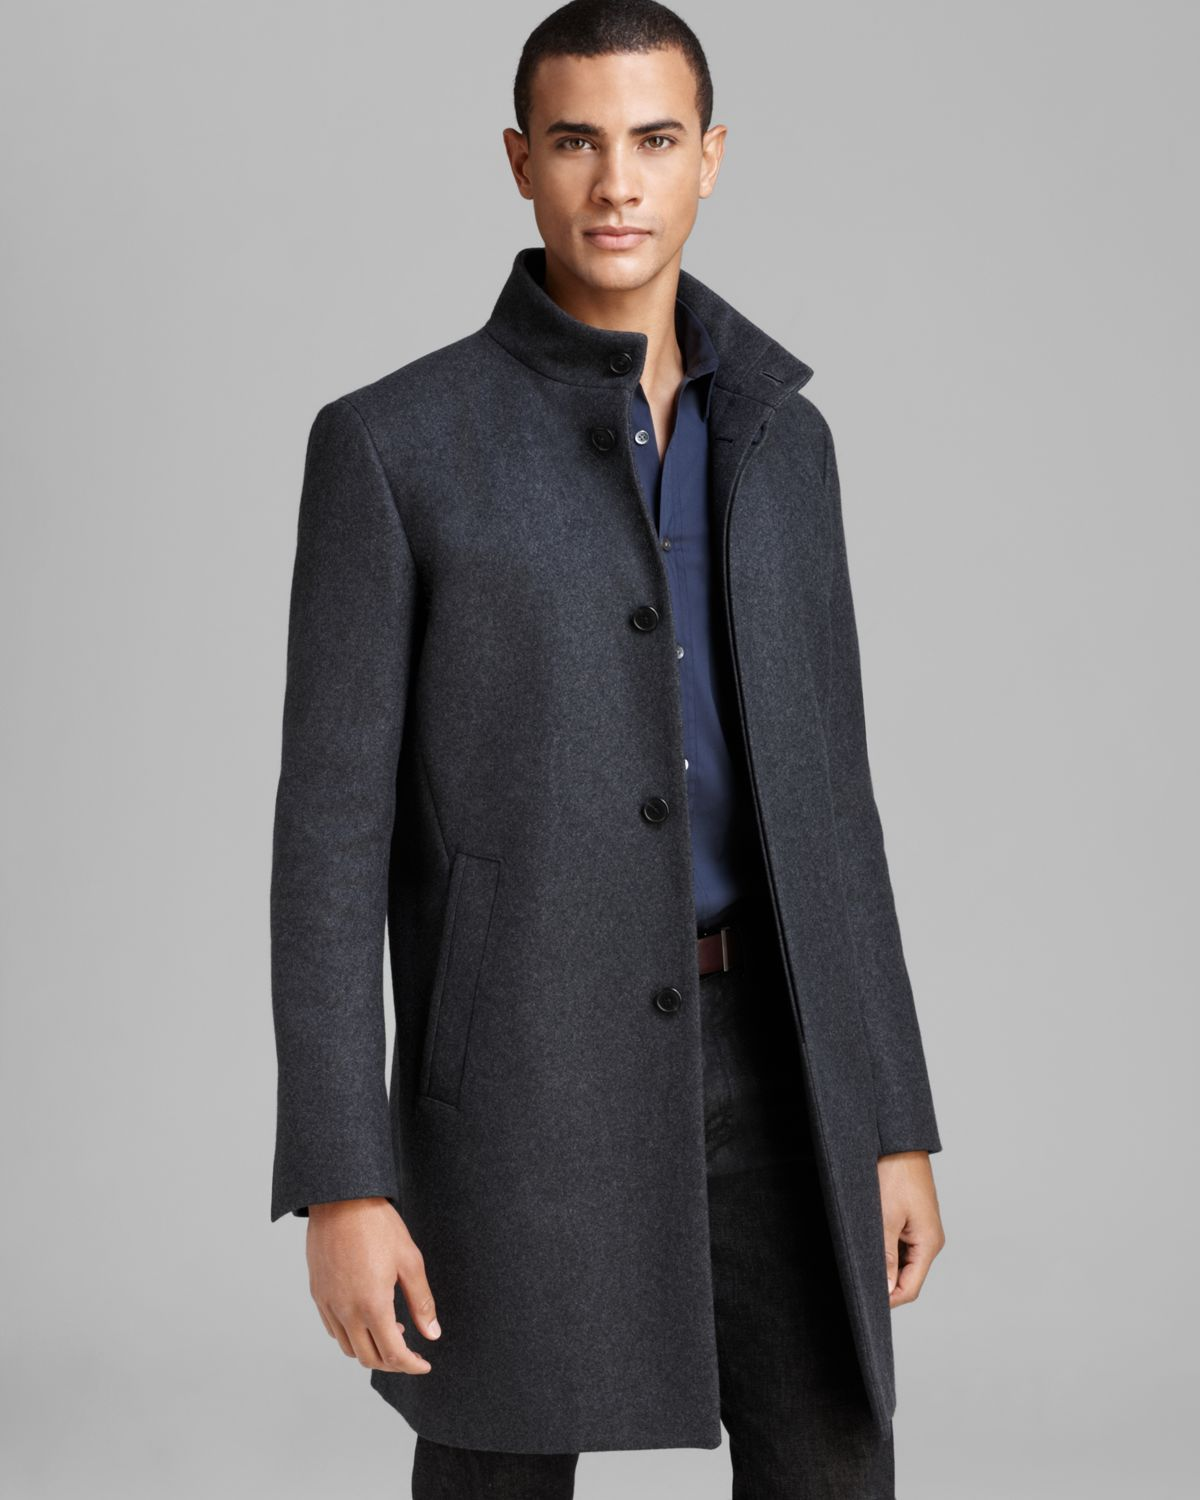 theory belvin vp voedar coat in gray for lyst